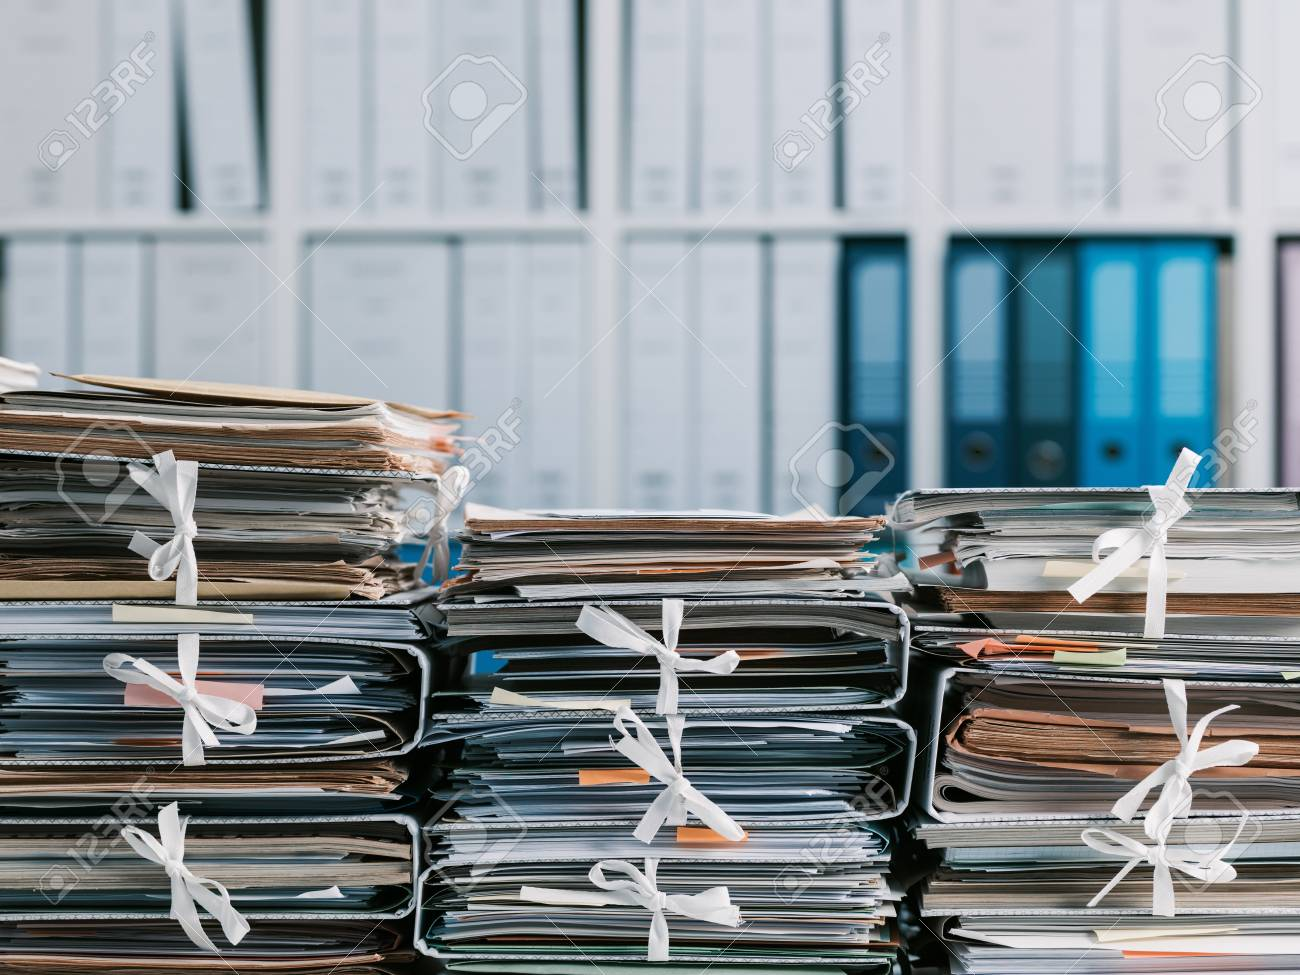 Stacks of files and paperwork in the office and bookshelves on the background: management and storage concept - 95237494